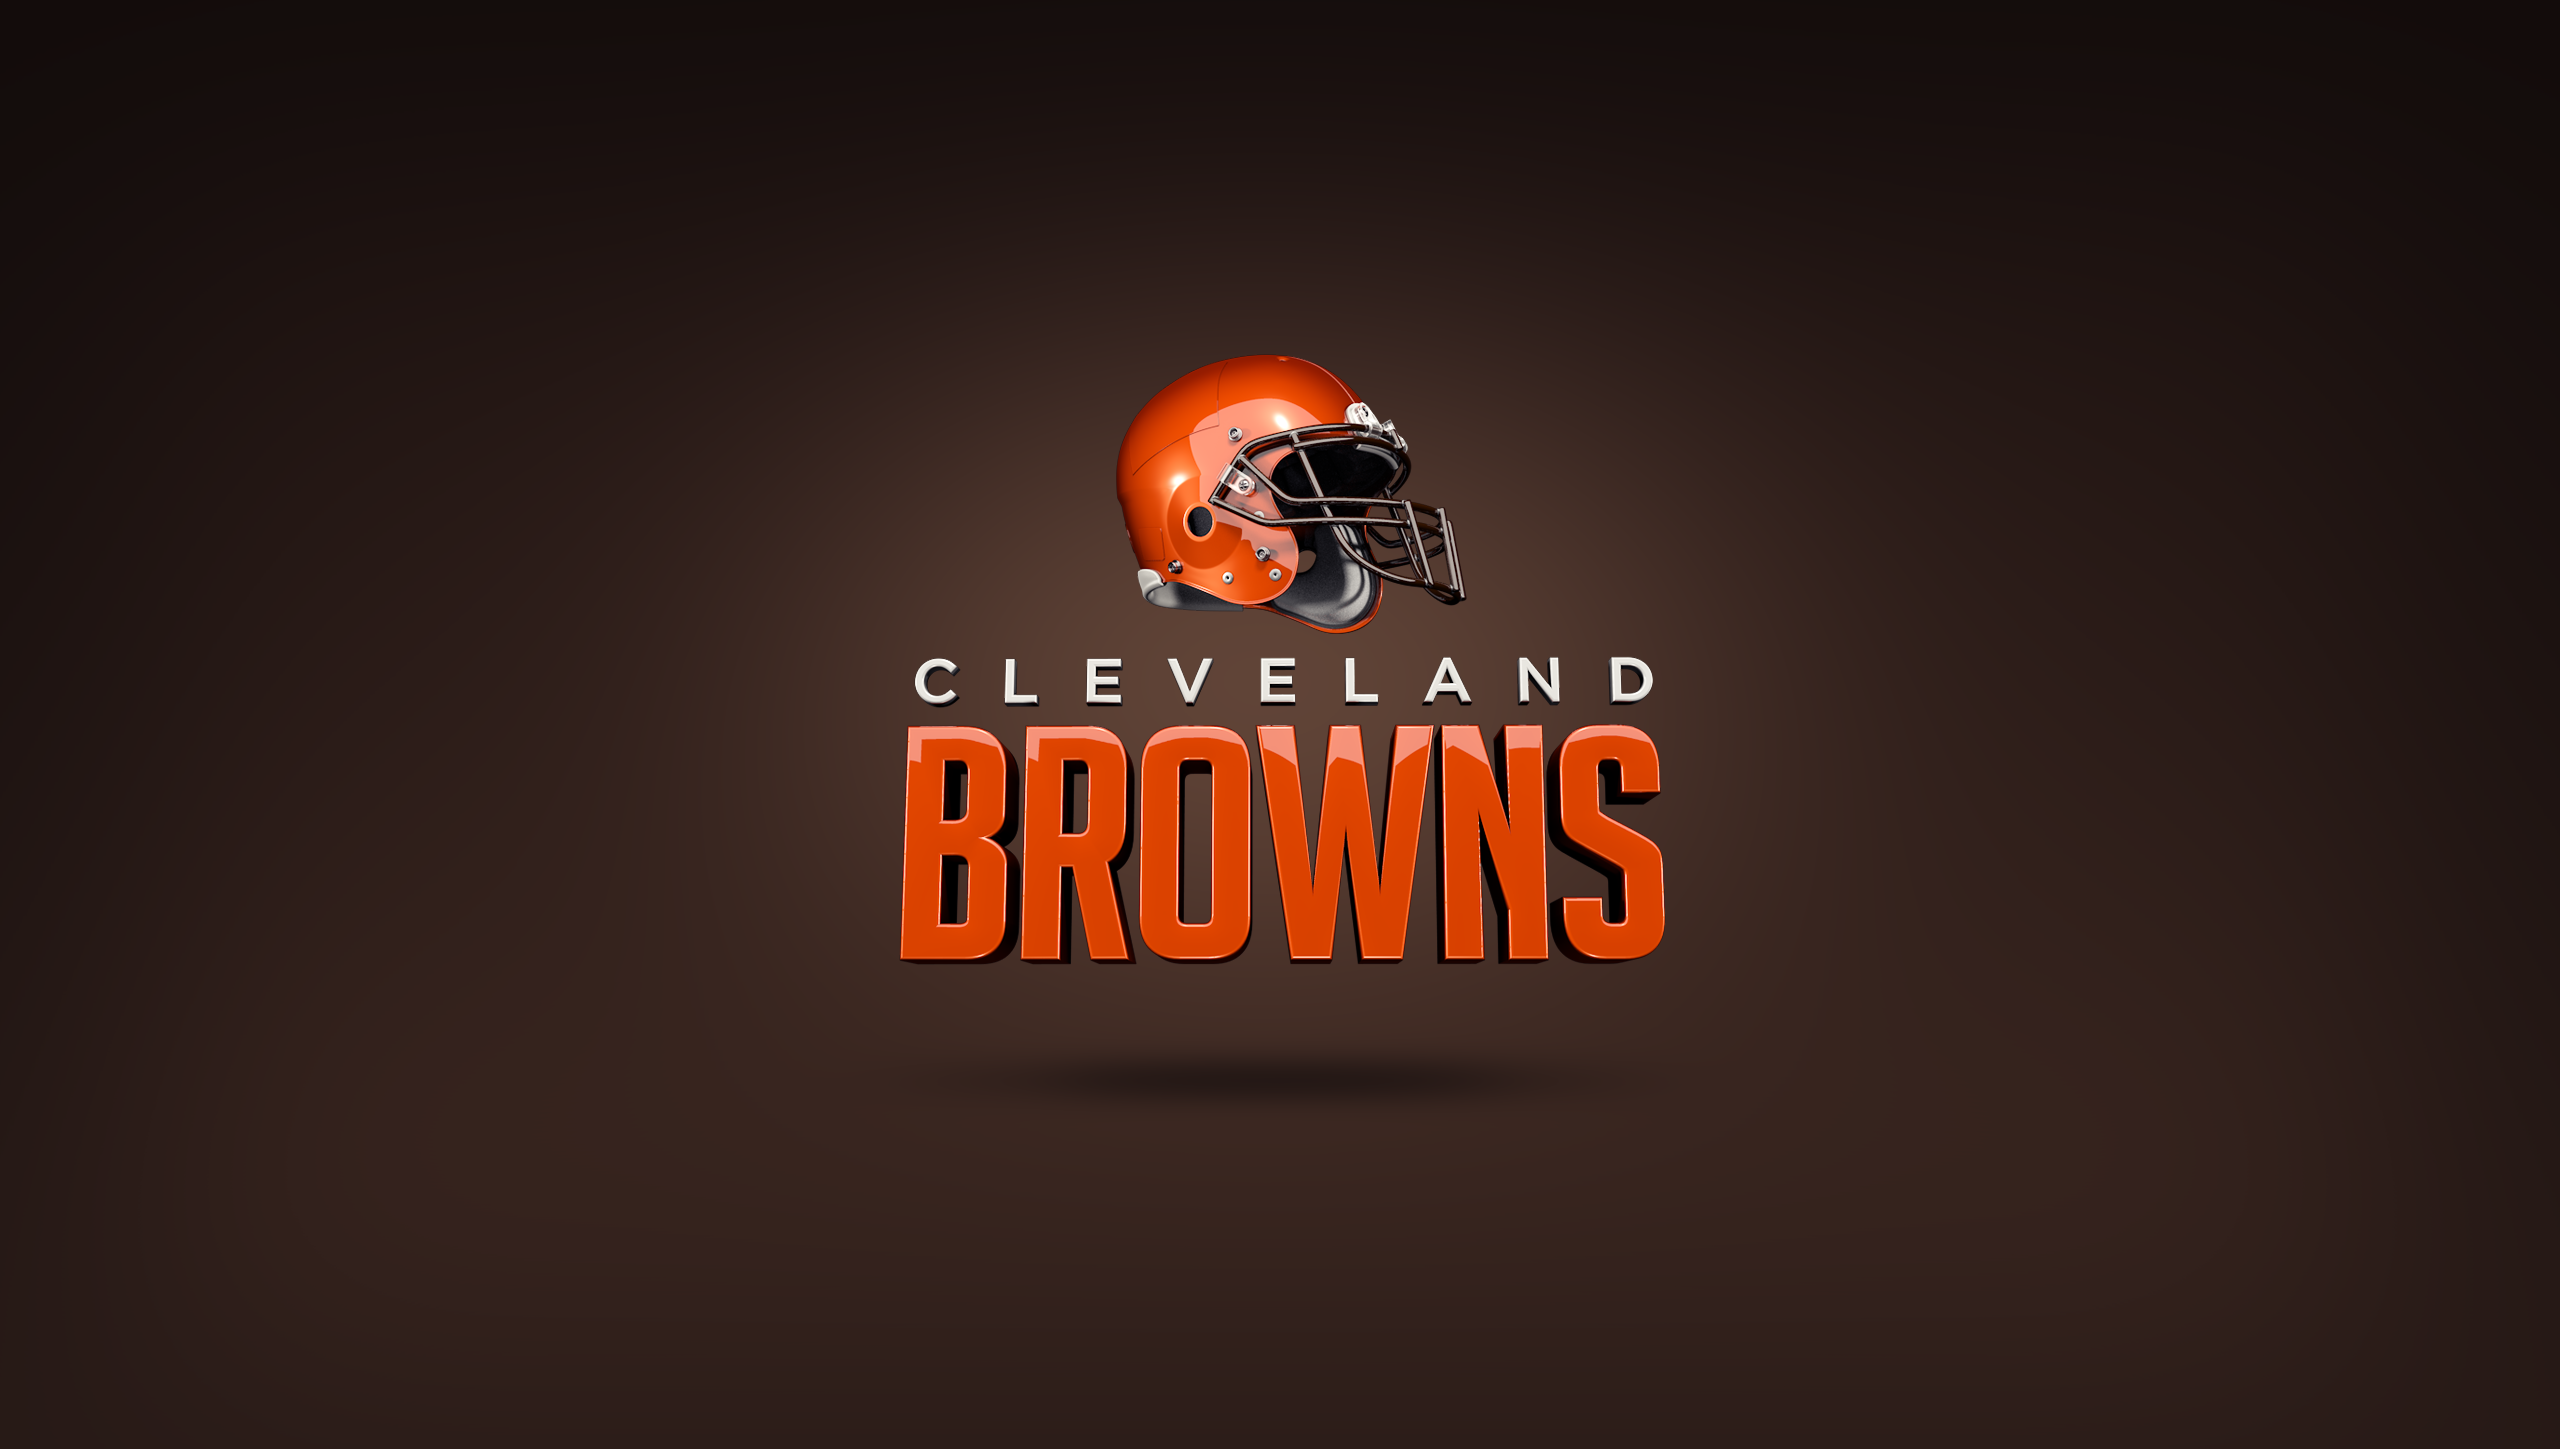 Browns Full HD Quality Wallpapers